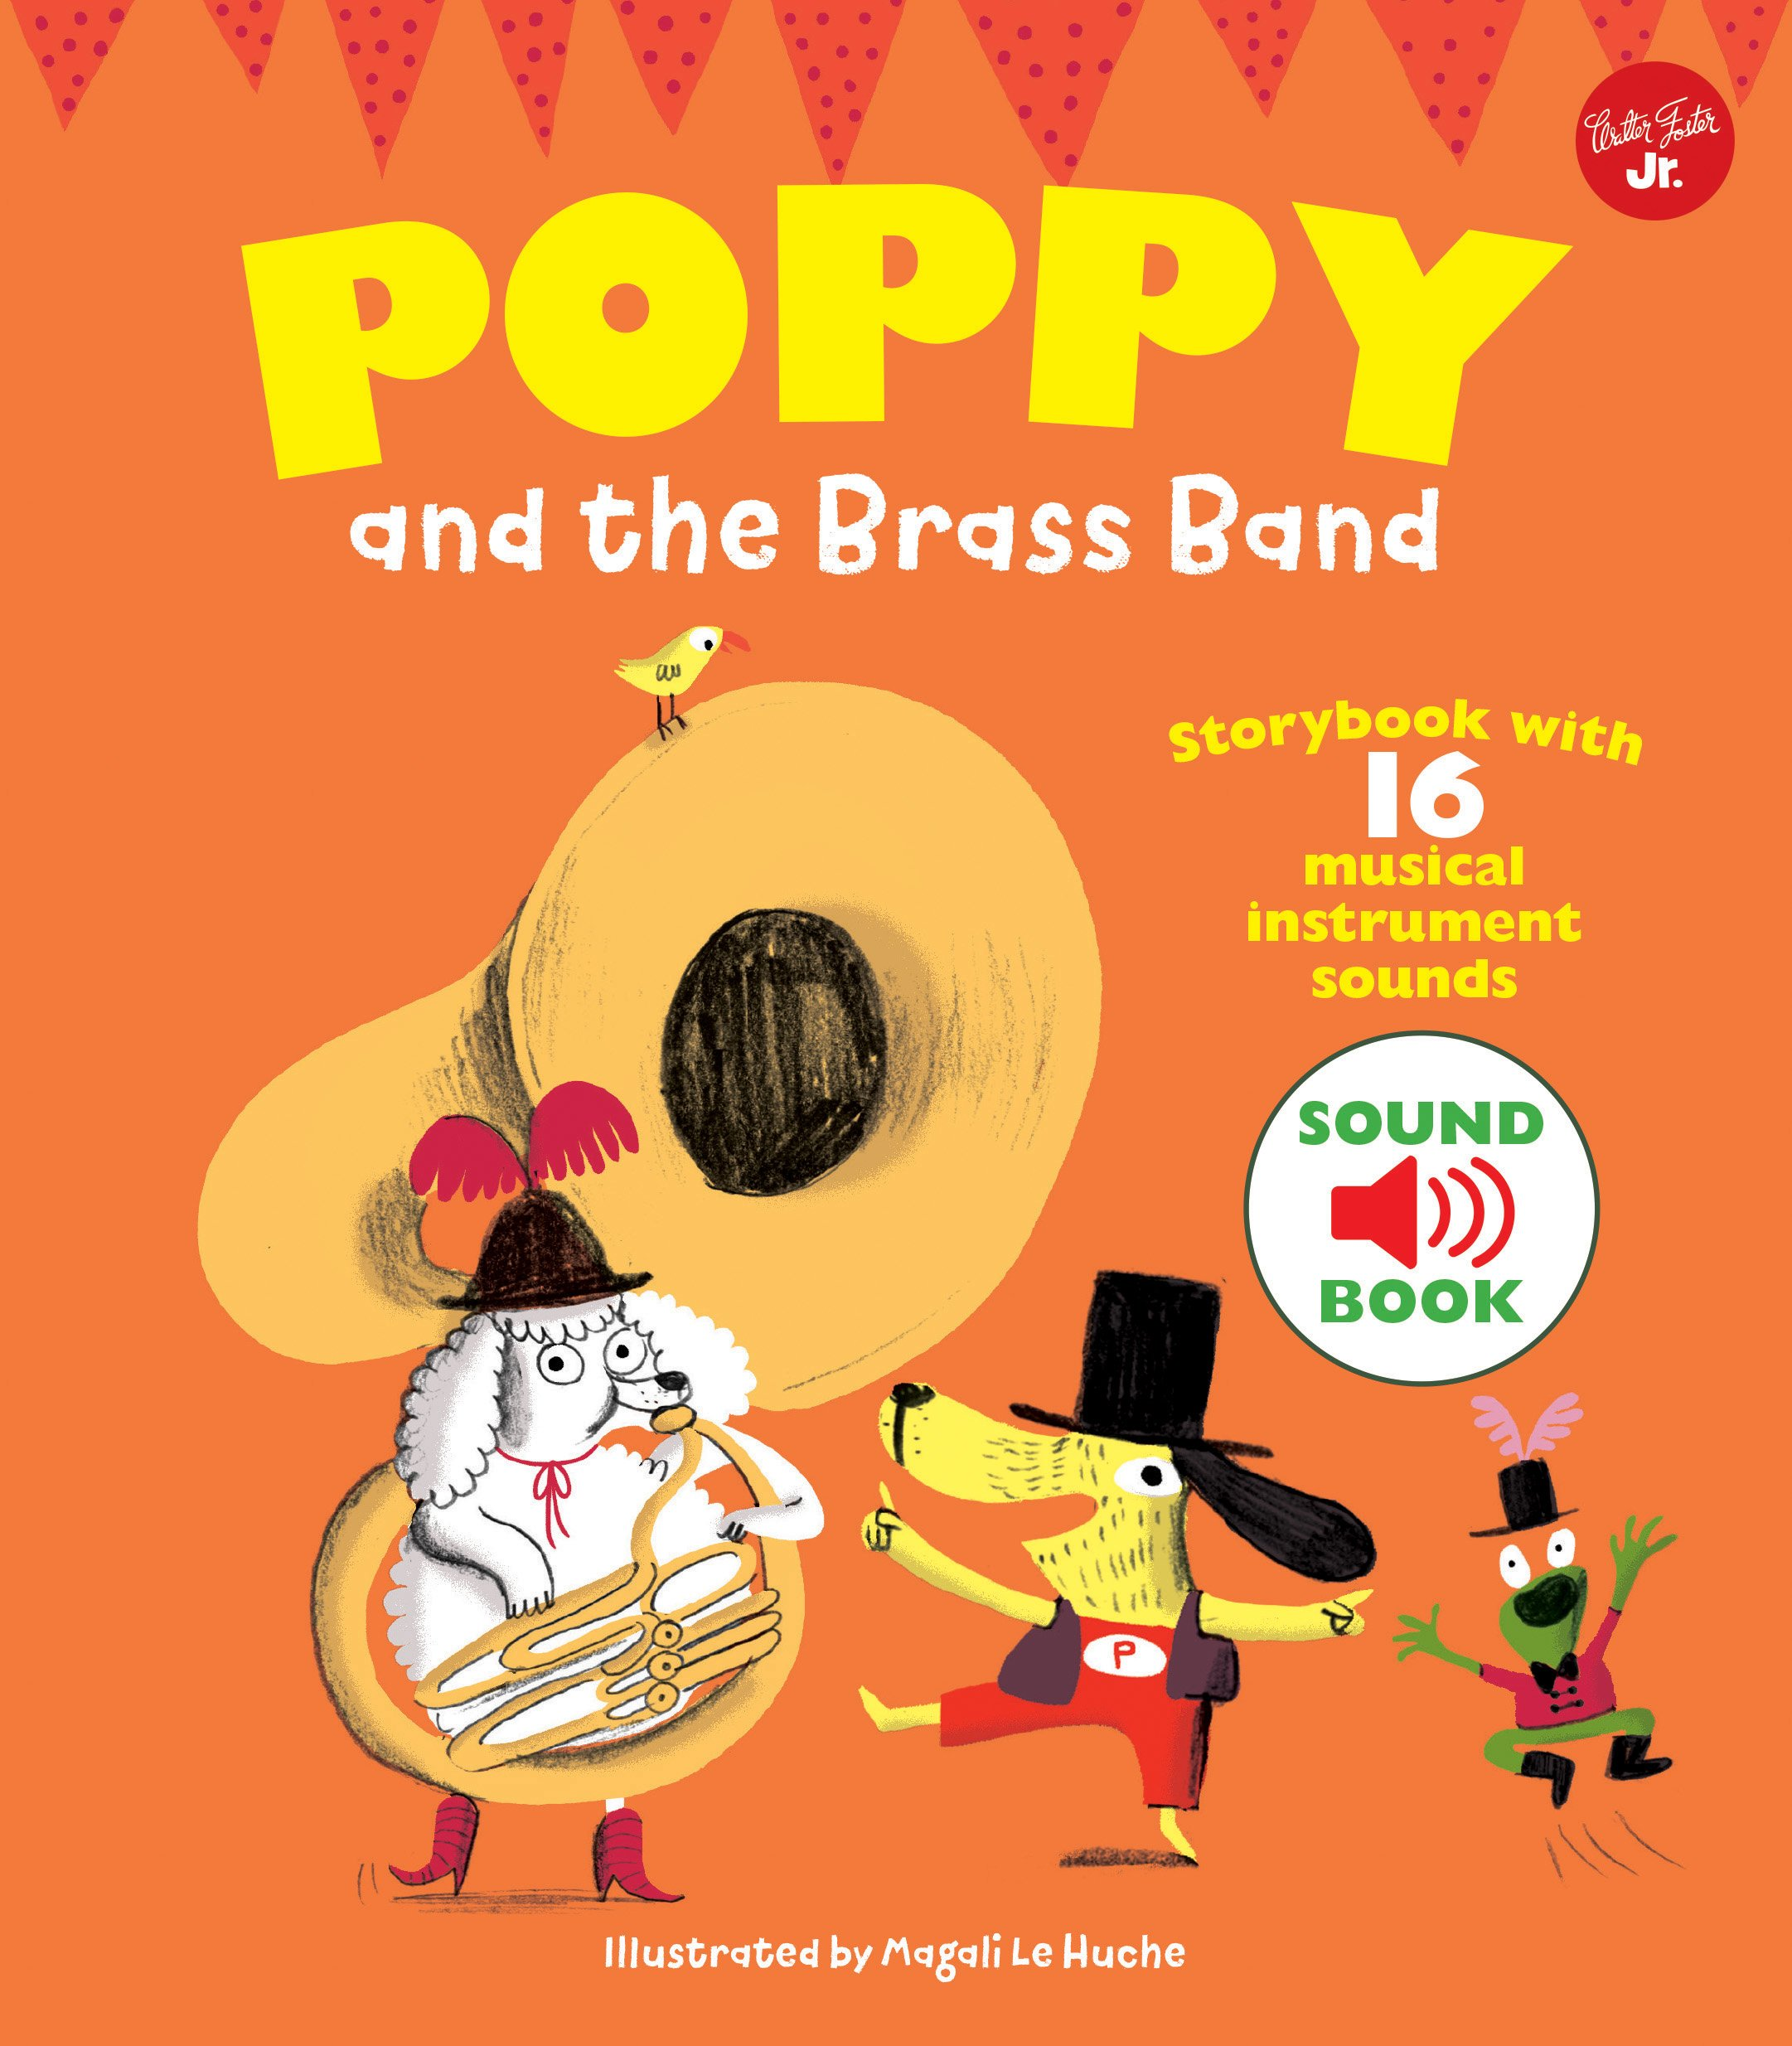 Poppy and the Brass Band: With 16 musical instrument sounds! by Walter Foster Jr (Image #1)